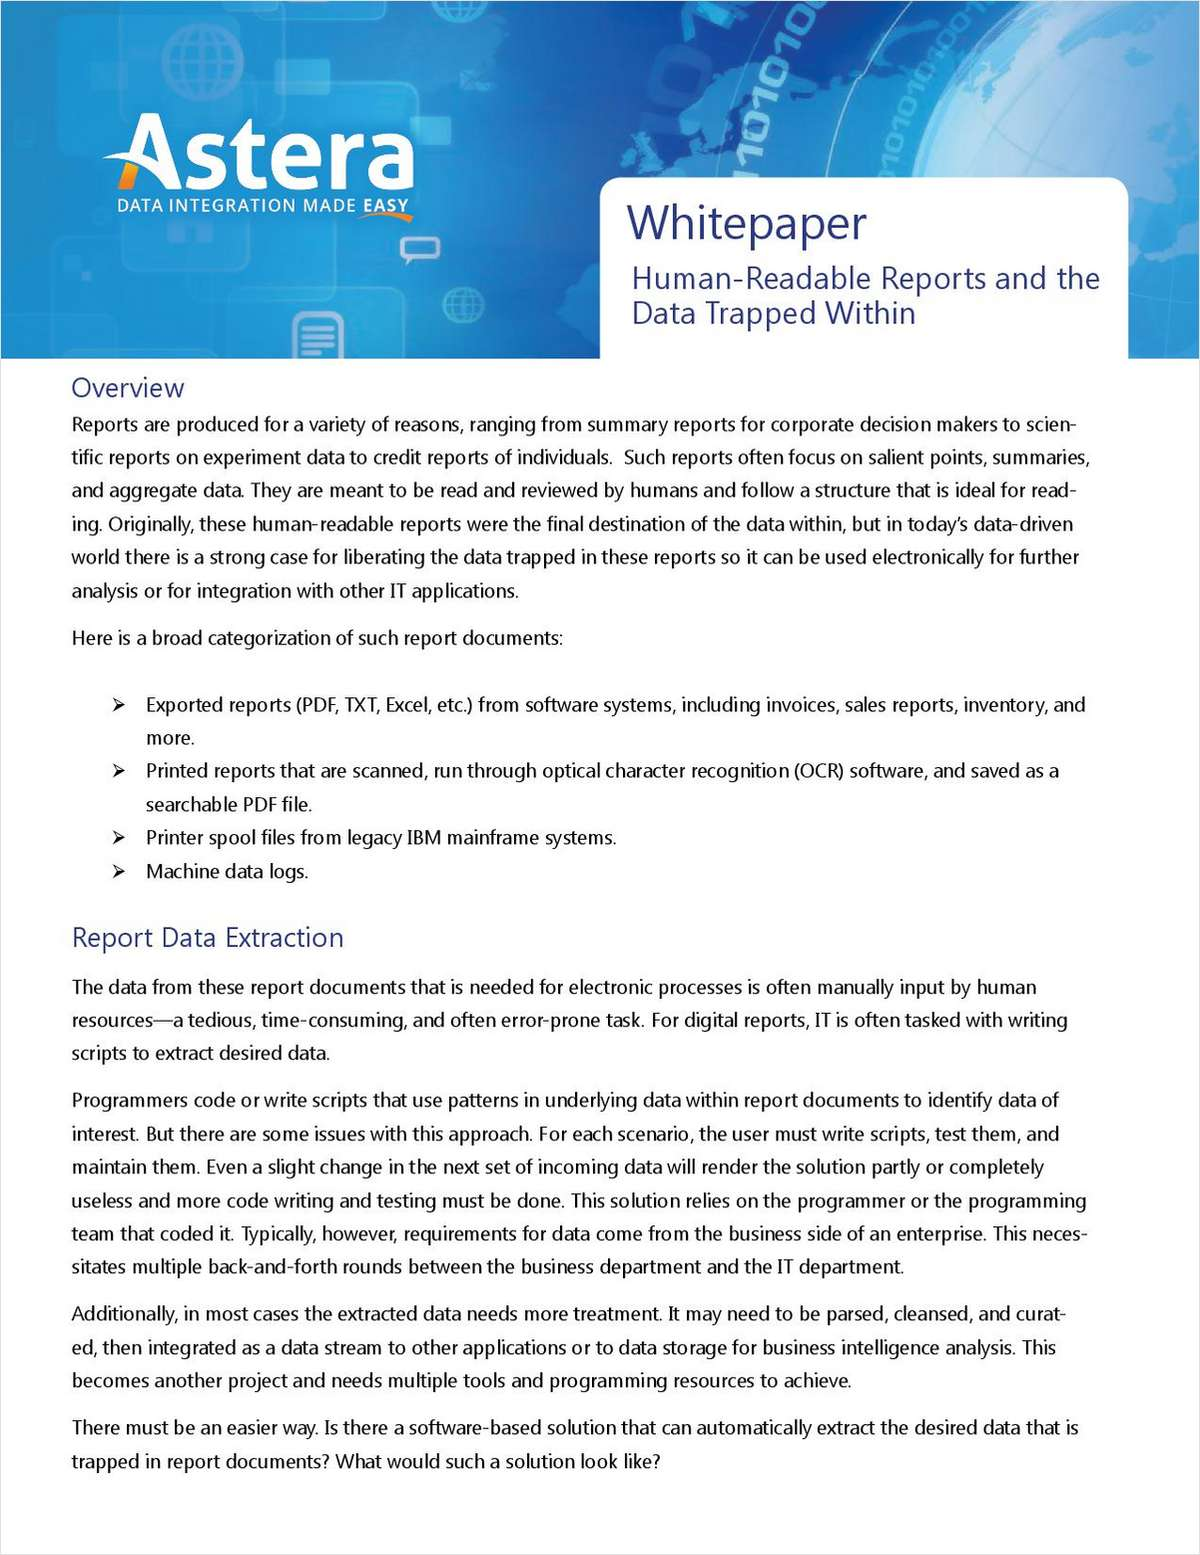 Human-Readable Reports and the Data Trapped Within